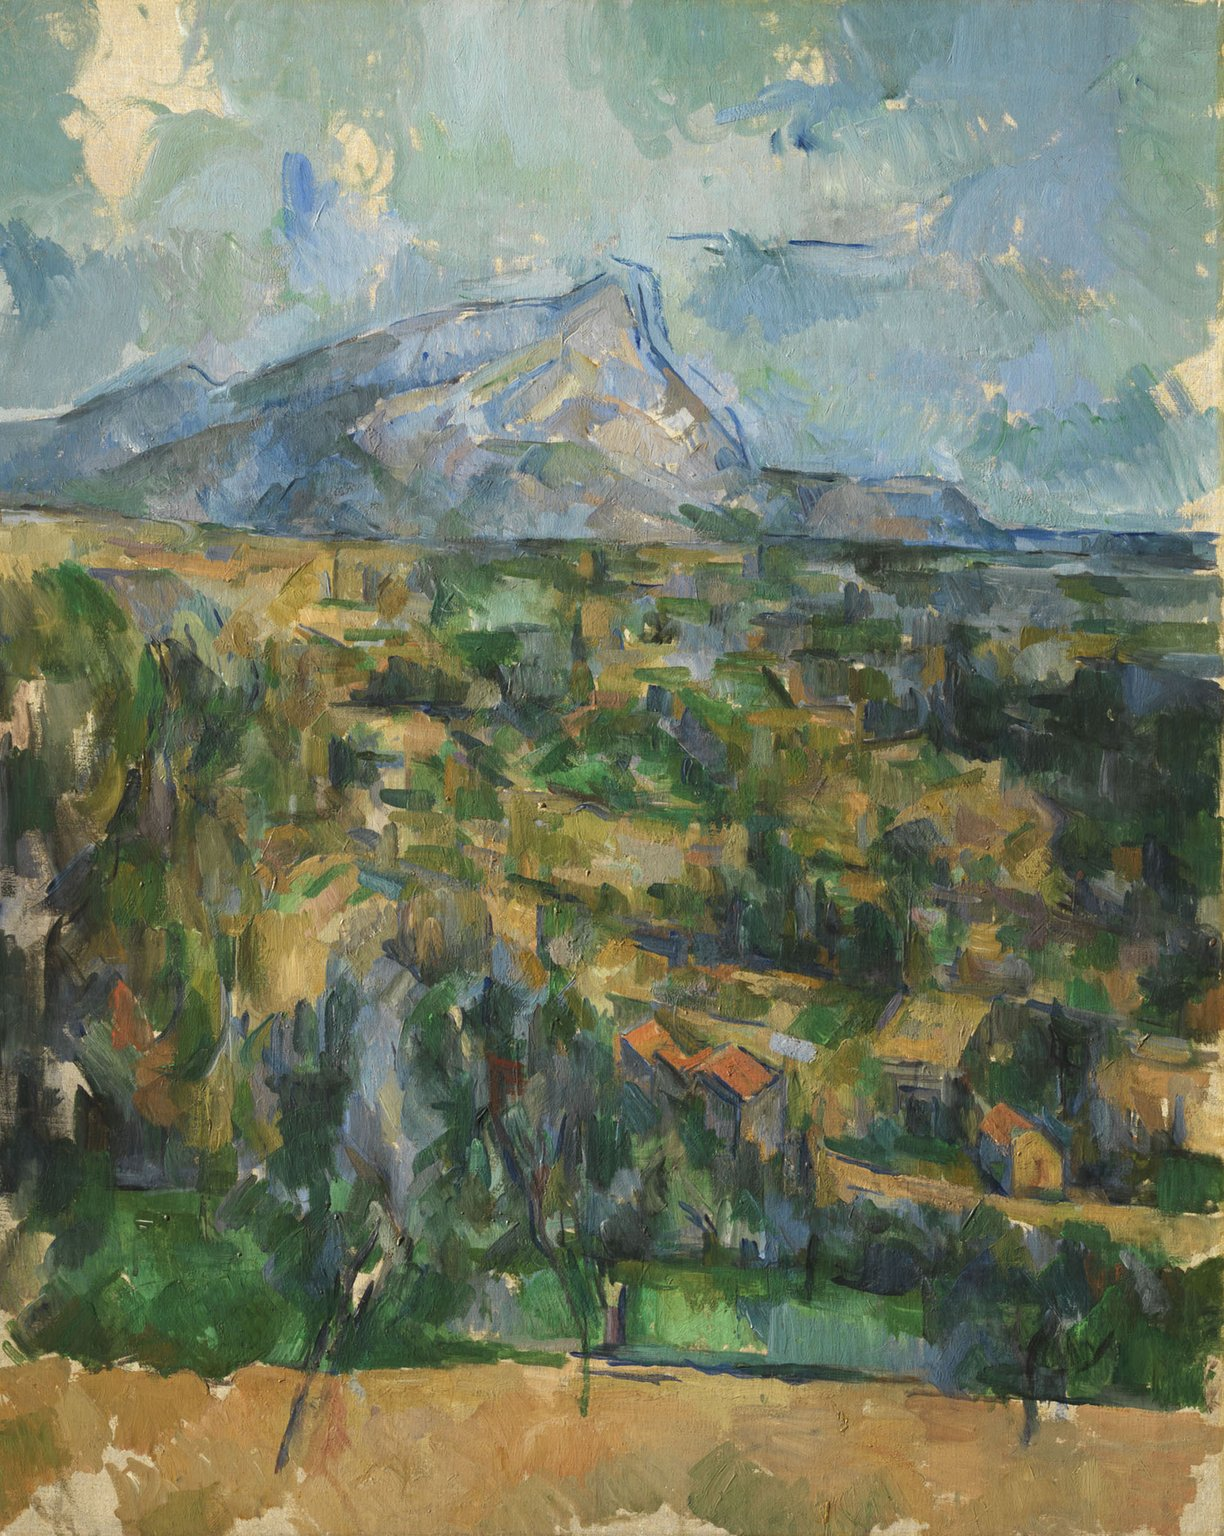 Mont Sainte-Victoire, ca. 1904–06; Oil on canvas; The Henry and Rose Pearlman Foundation, on long-term loan to the Princeton University Art Museum